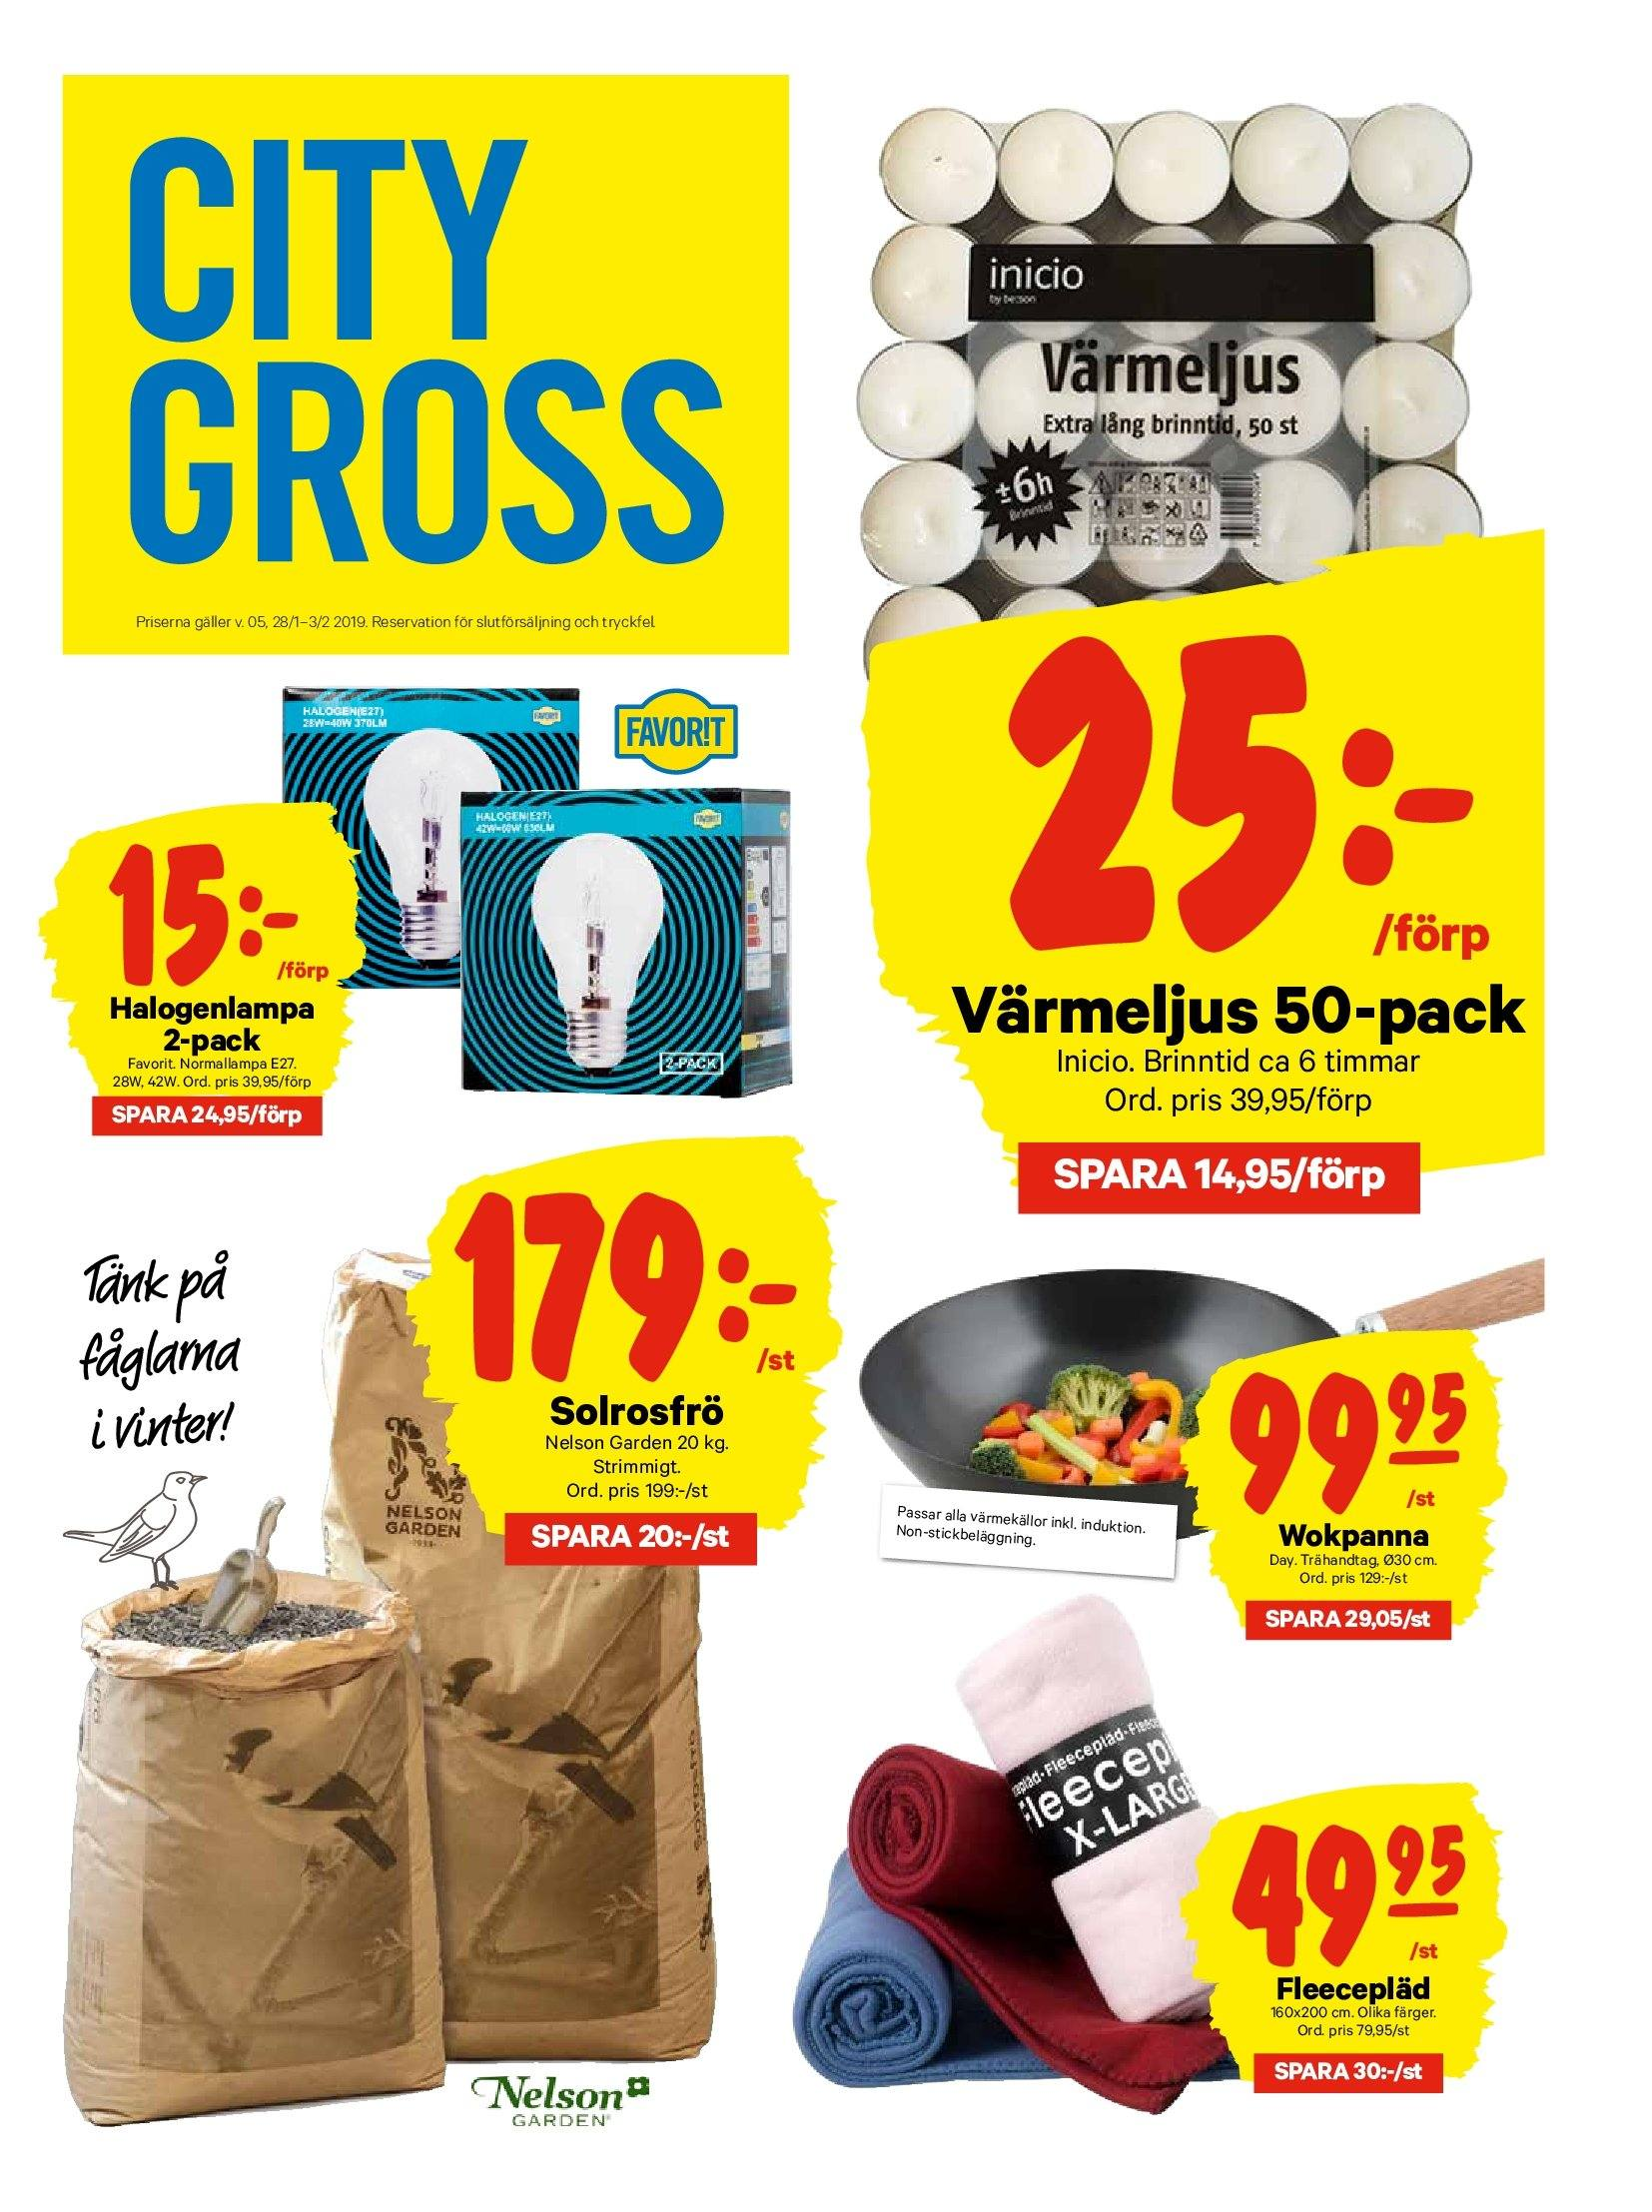 City Gross reklamblad - 28/1 2019 - 3/2 2019. Sida 13.